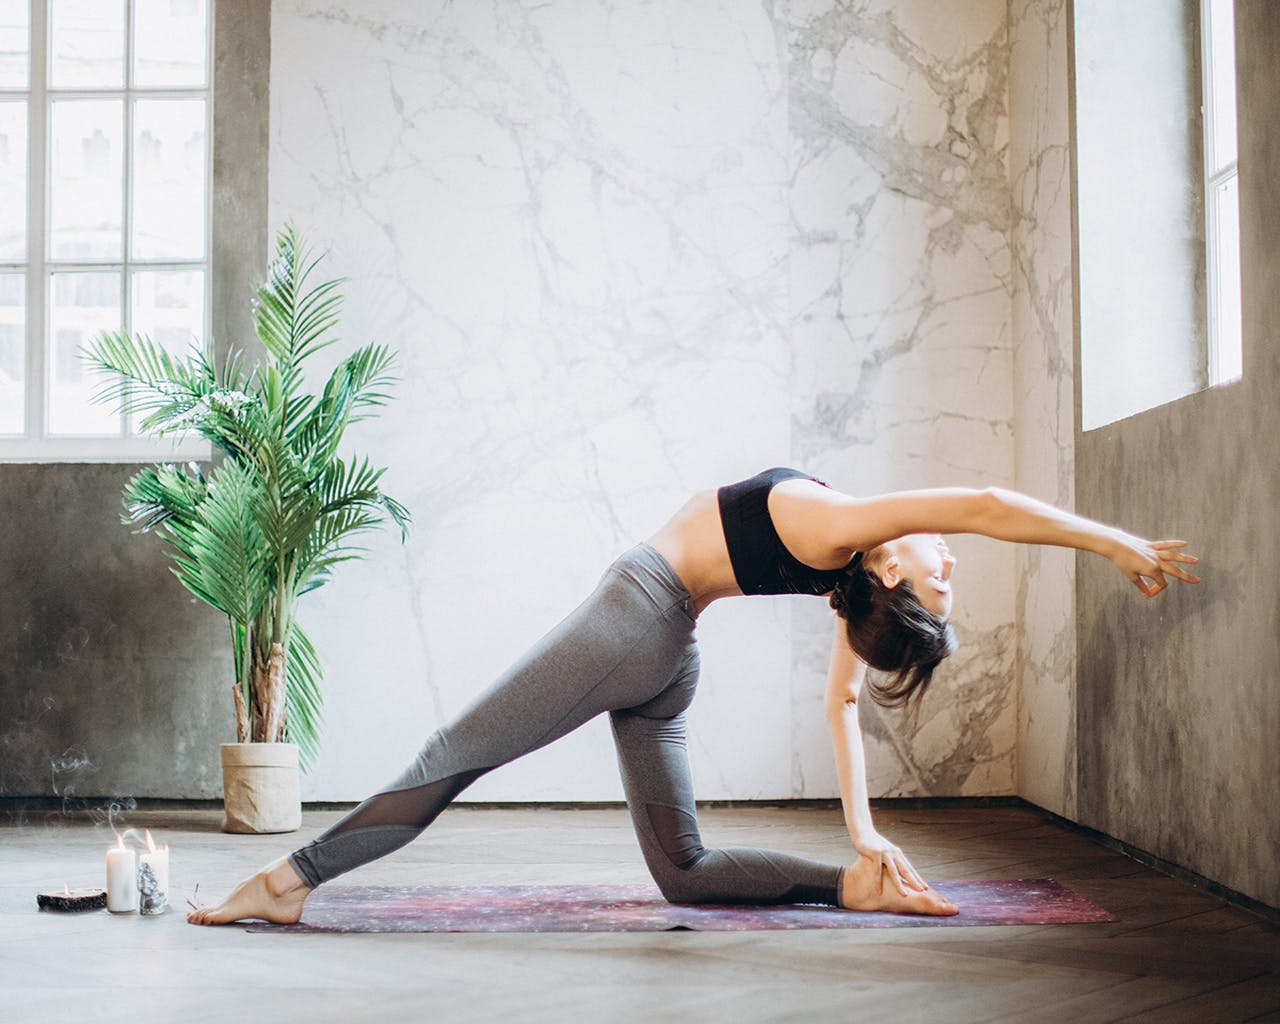 10 Fitness Influencers To Watch On YouTube To Help You Kickstart Your Fitness Journey